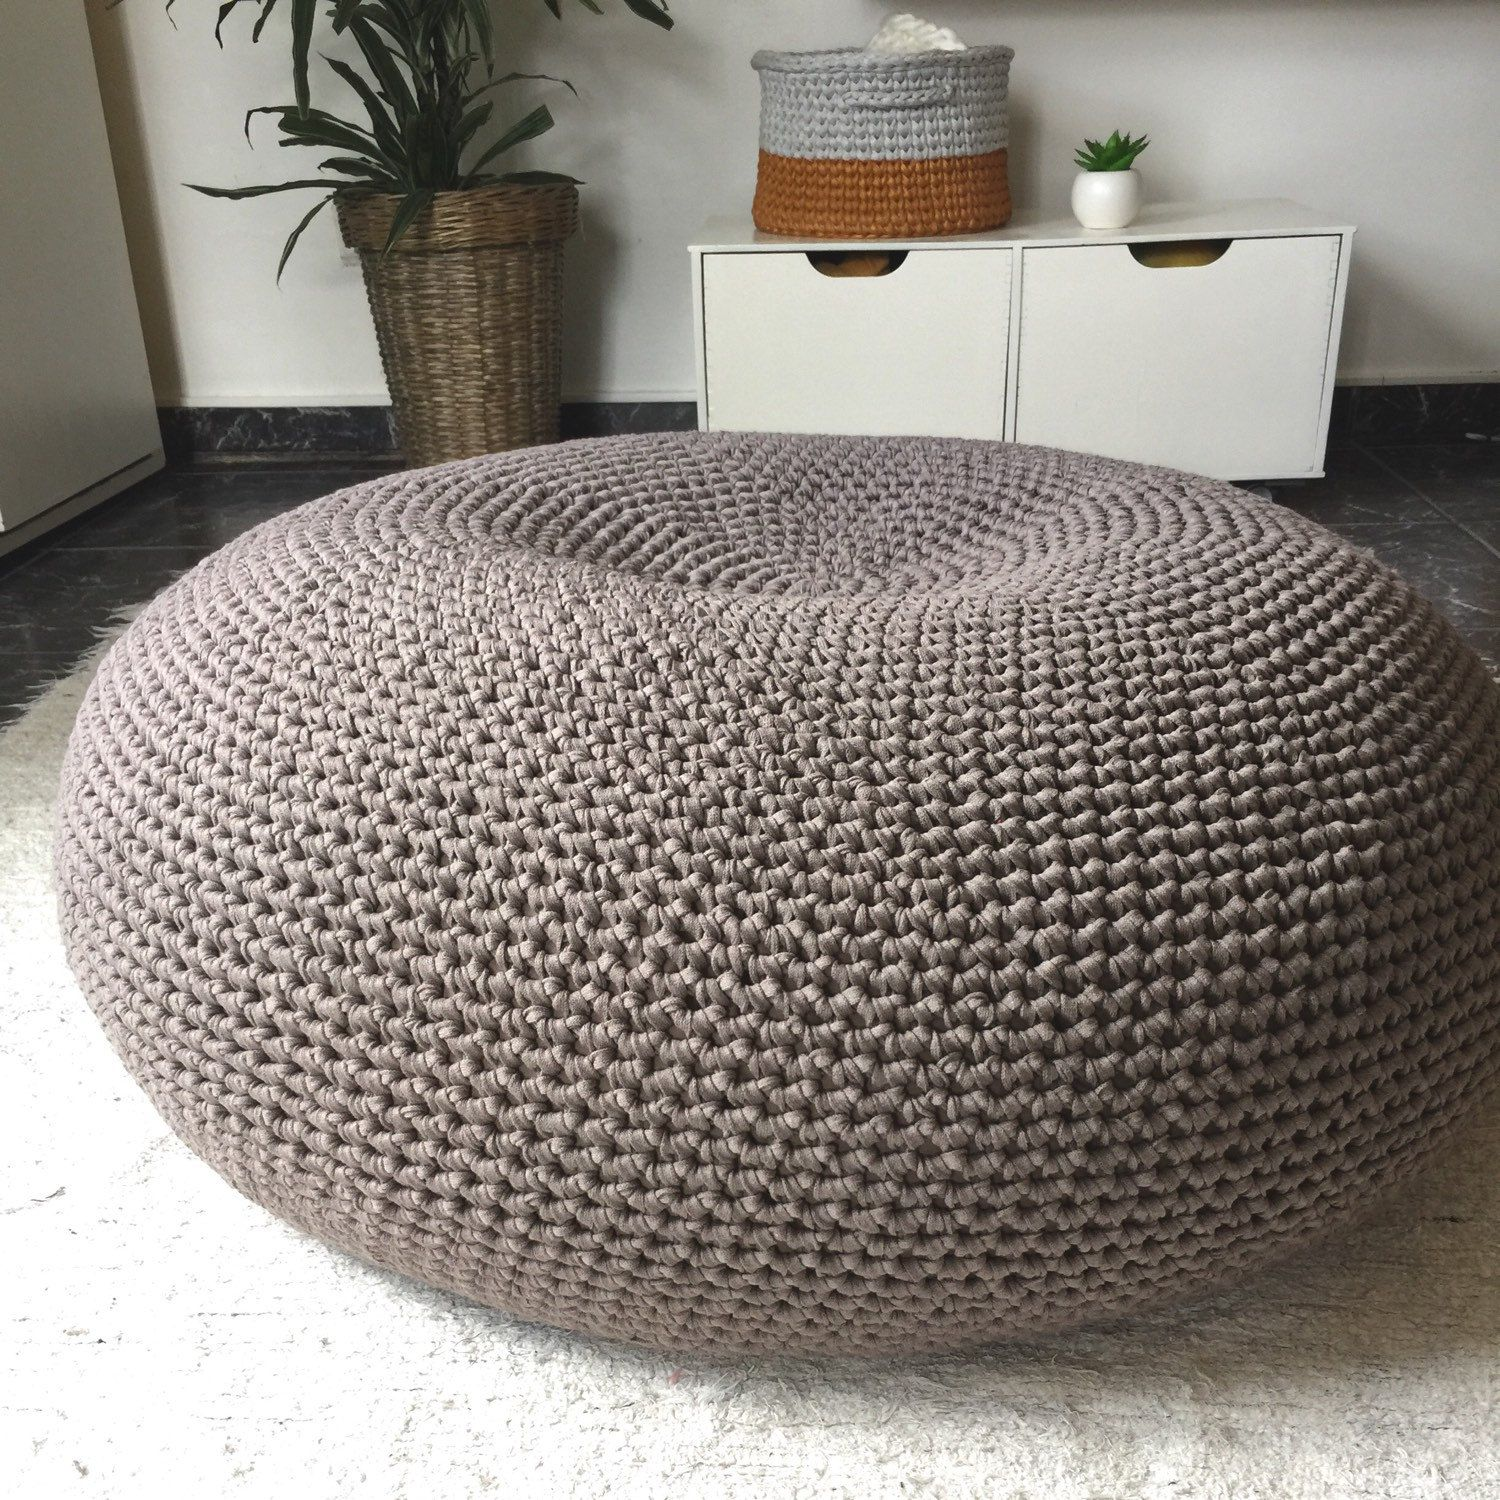 Oversized Chair Cushions Office Chairs For Back Pain Giant Pouf Ottoman, Extra Large Floor Cushion, Bean Bag Chair, Round ...